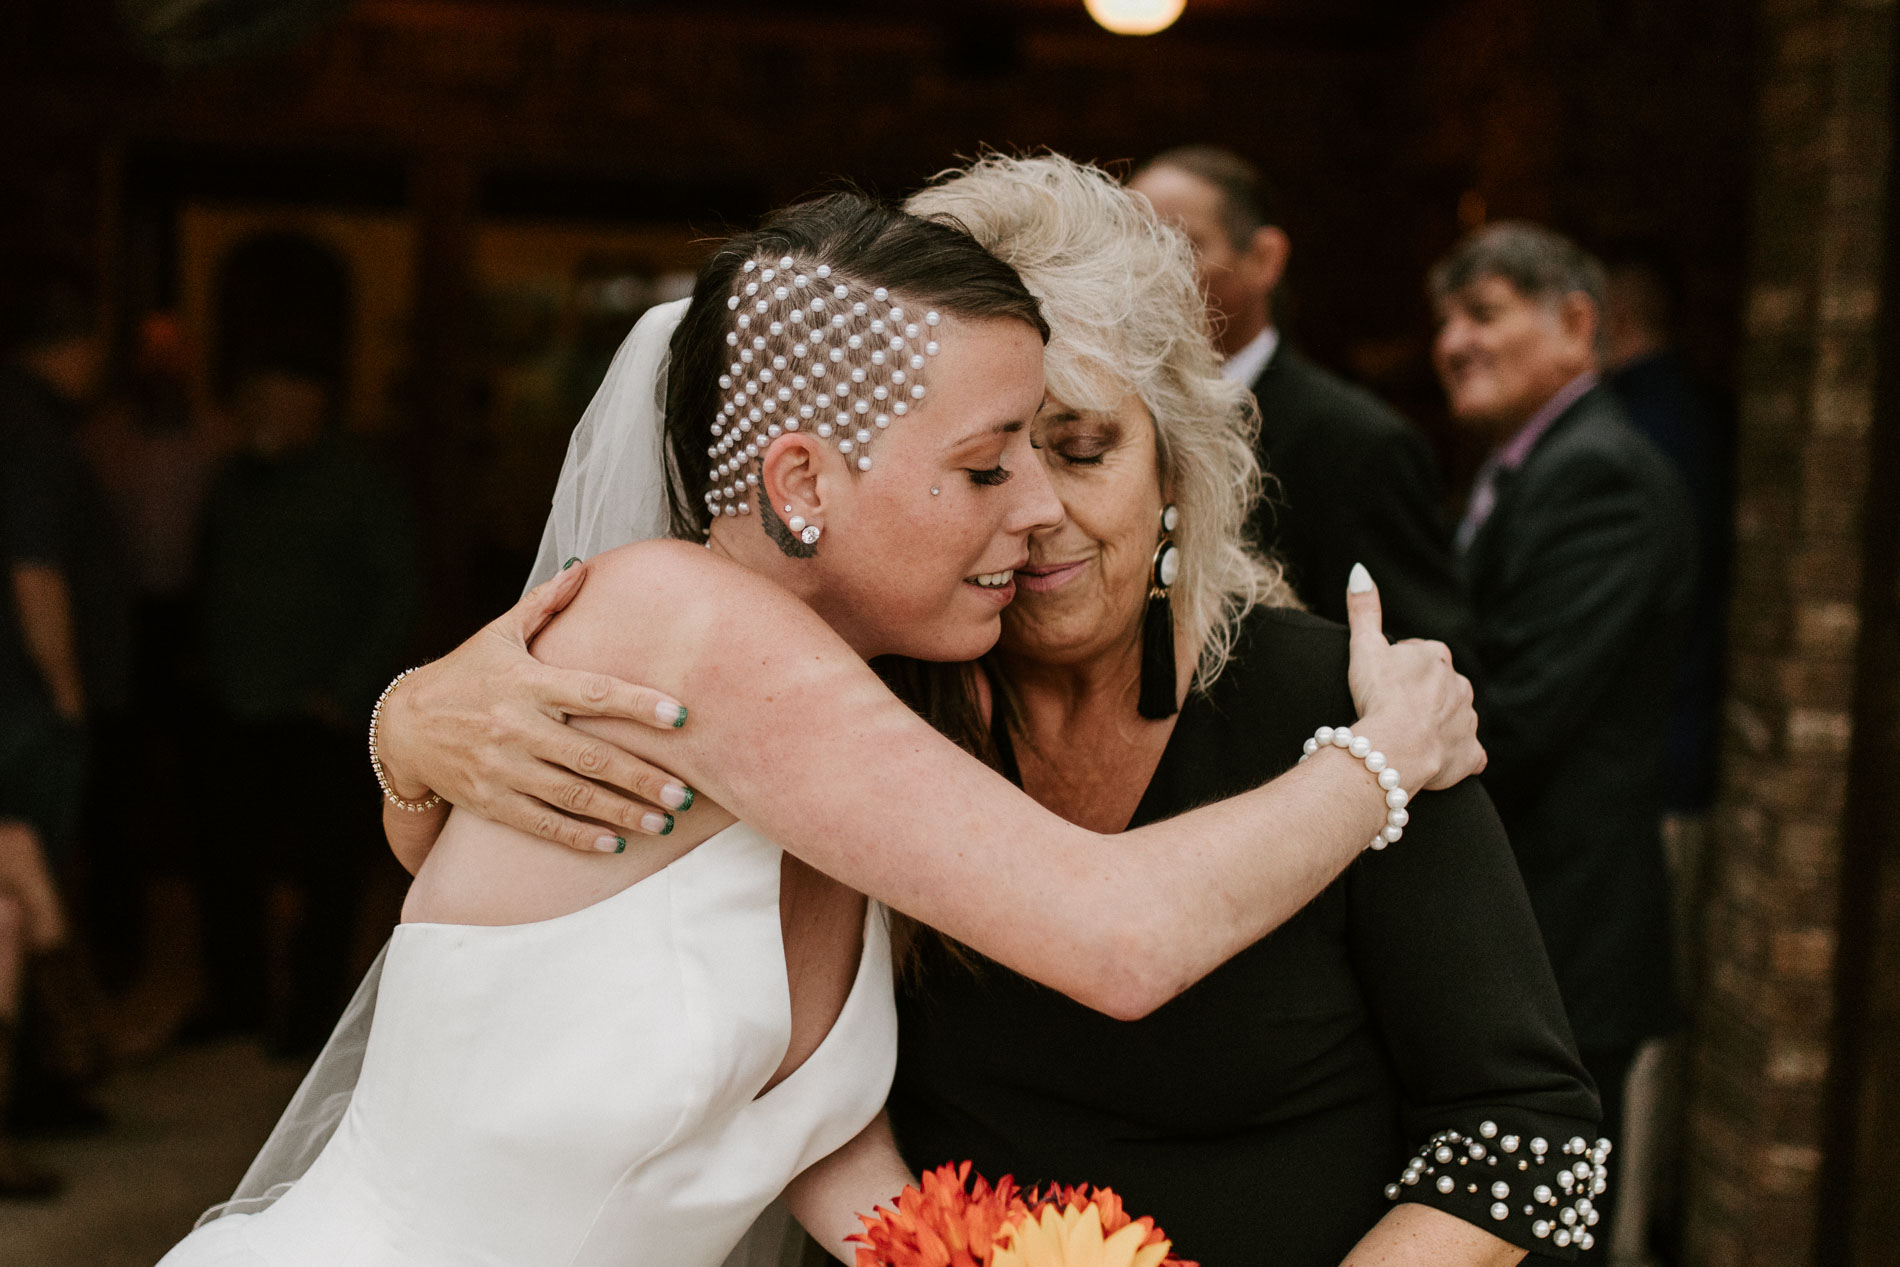 mother daughter touching moment after wedding ceremony